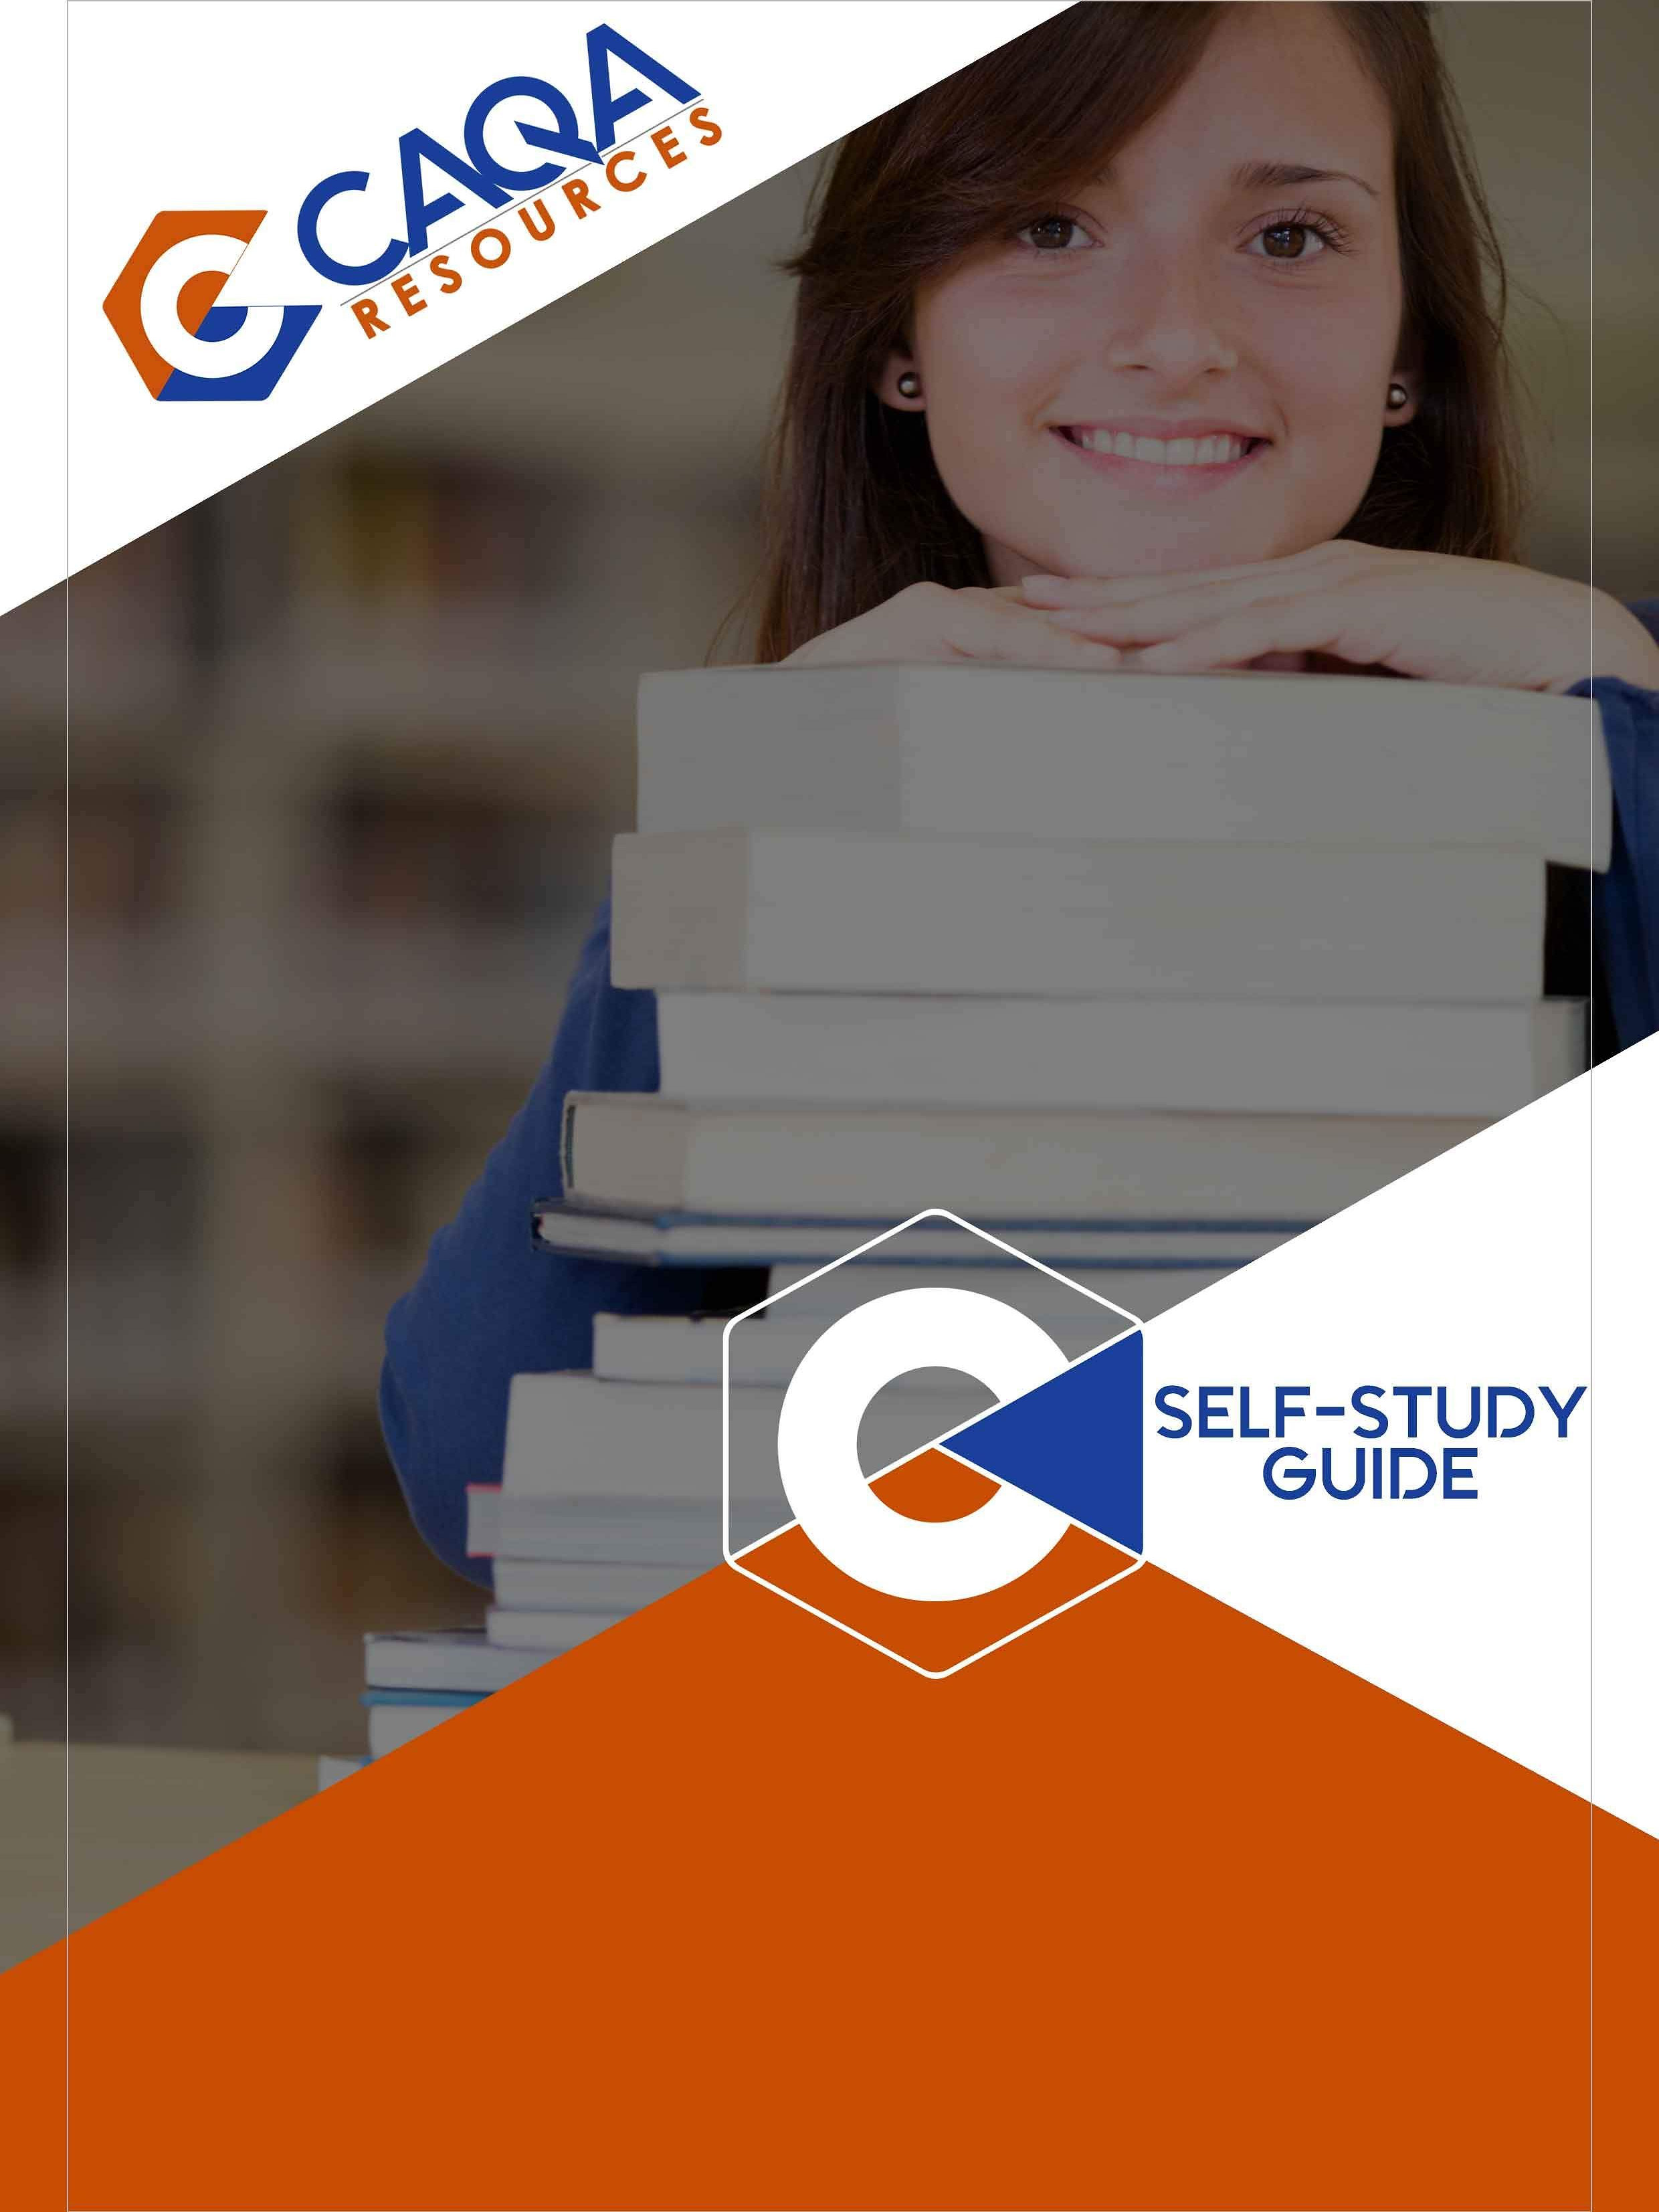 Rto consultantscompliance training and quality resourcesasqa our self study guide support your learners to understand the underpinning knowledge of the training package this document assists trainers to deliver sciox Choice Image